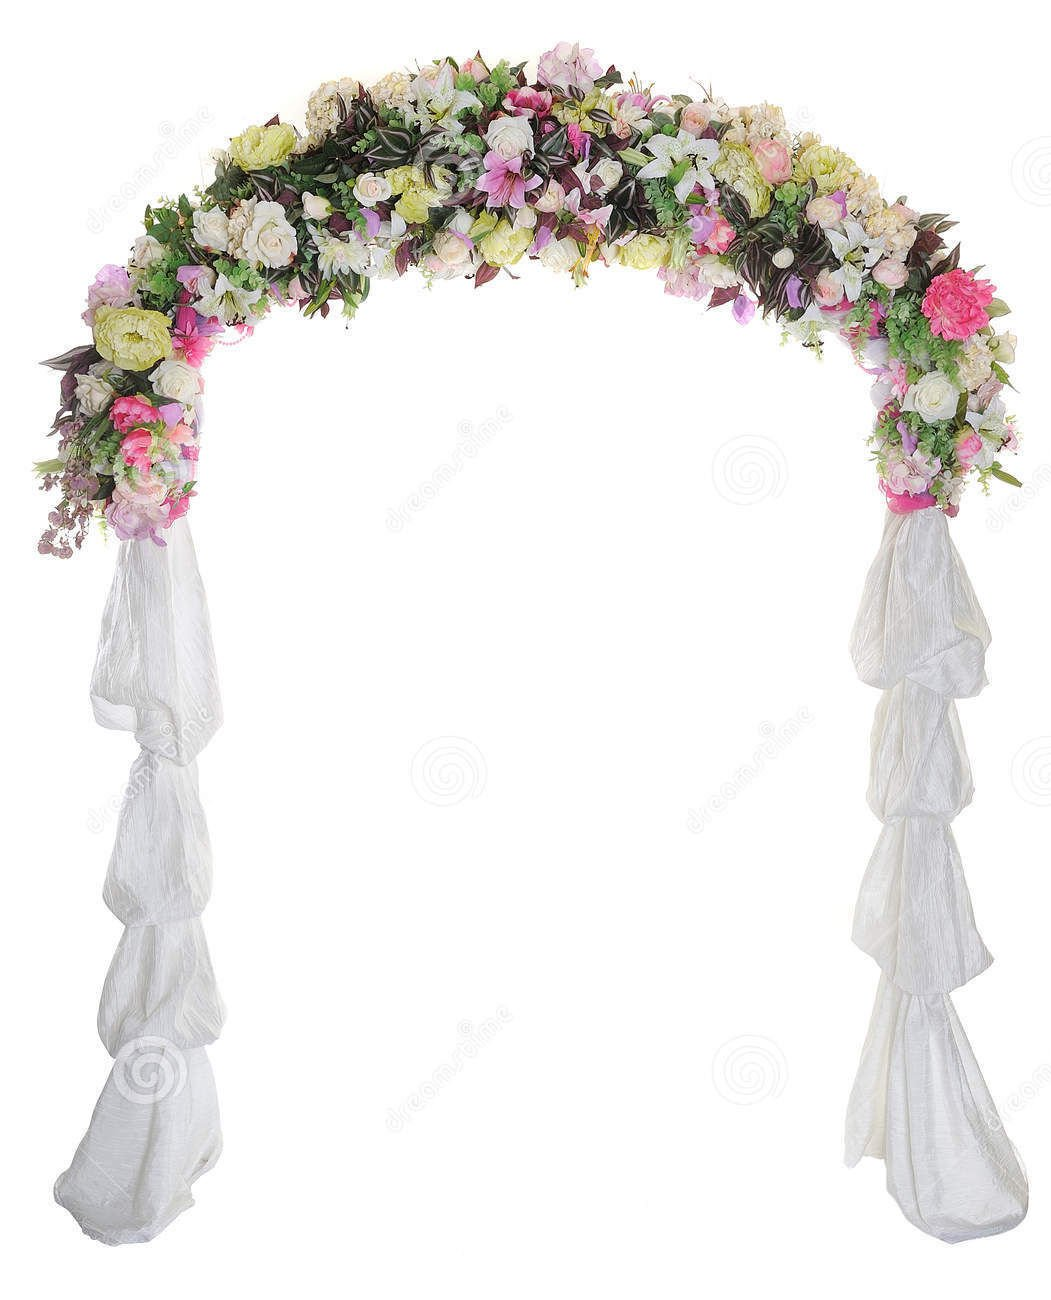 Amazon wedding arch way garden quinceanera party flowers amazon wedding arch way garden quinceanera party flowers balloon decoration white metal gh45843 3468 t34562fd406659 home kitchen junglespirit Gallery